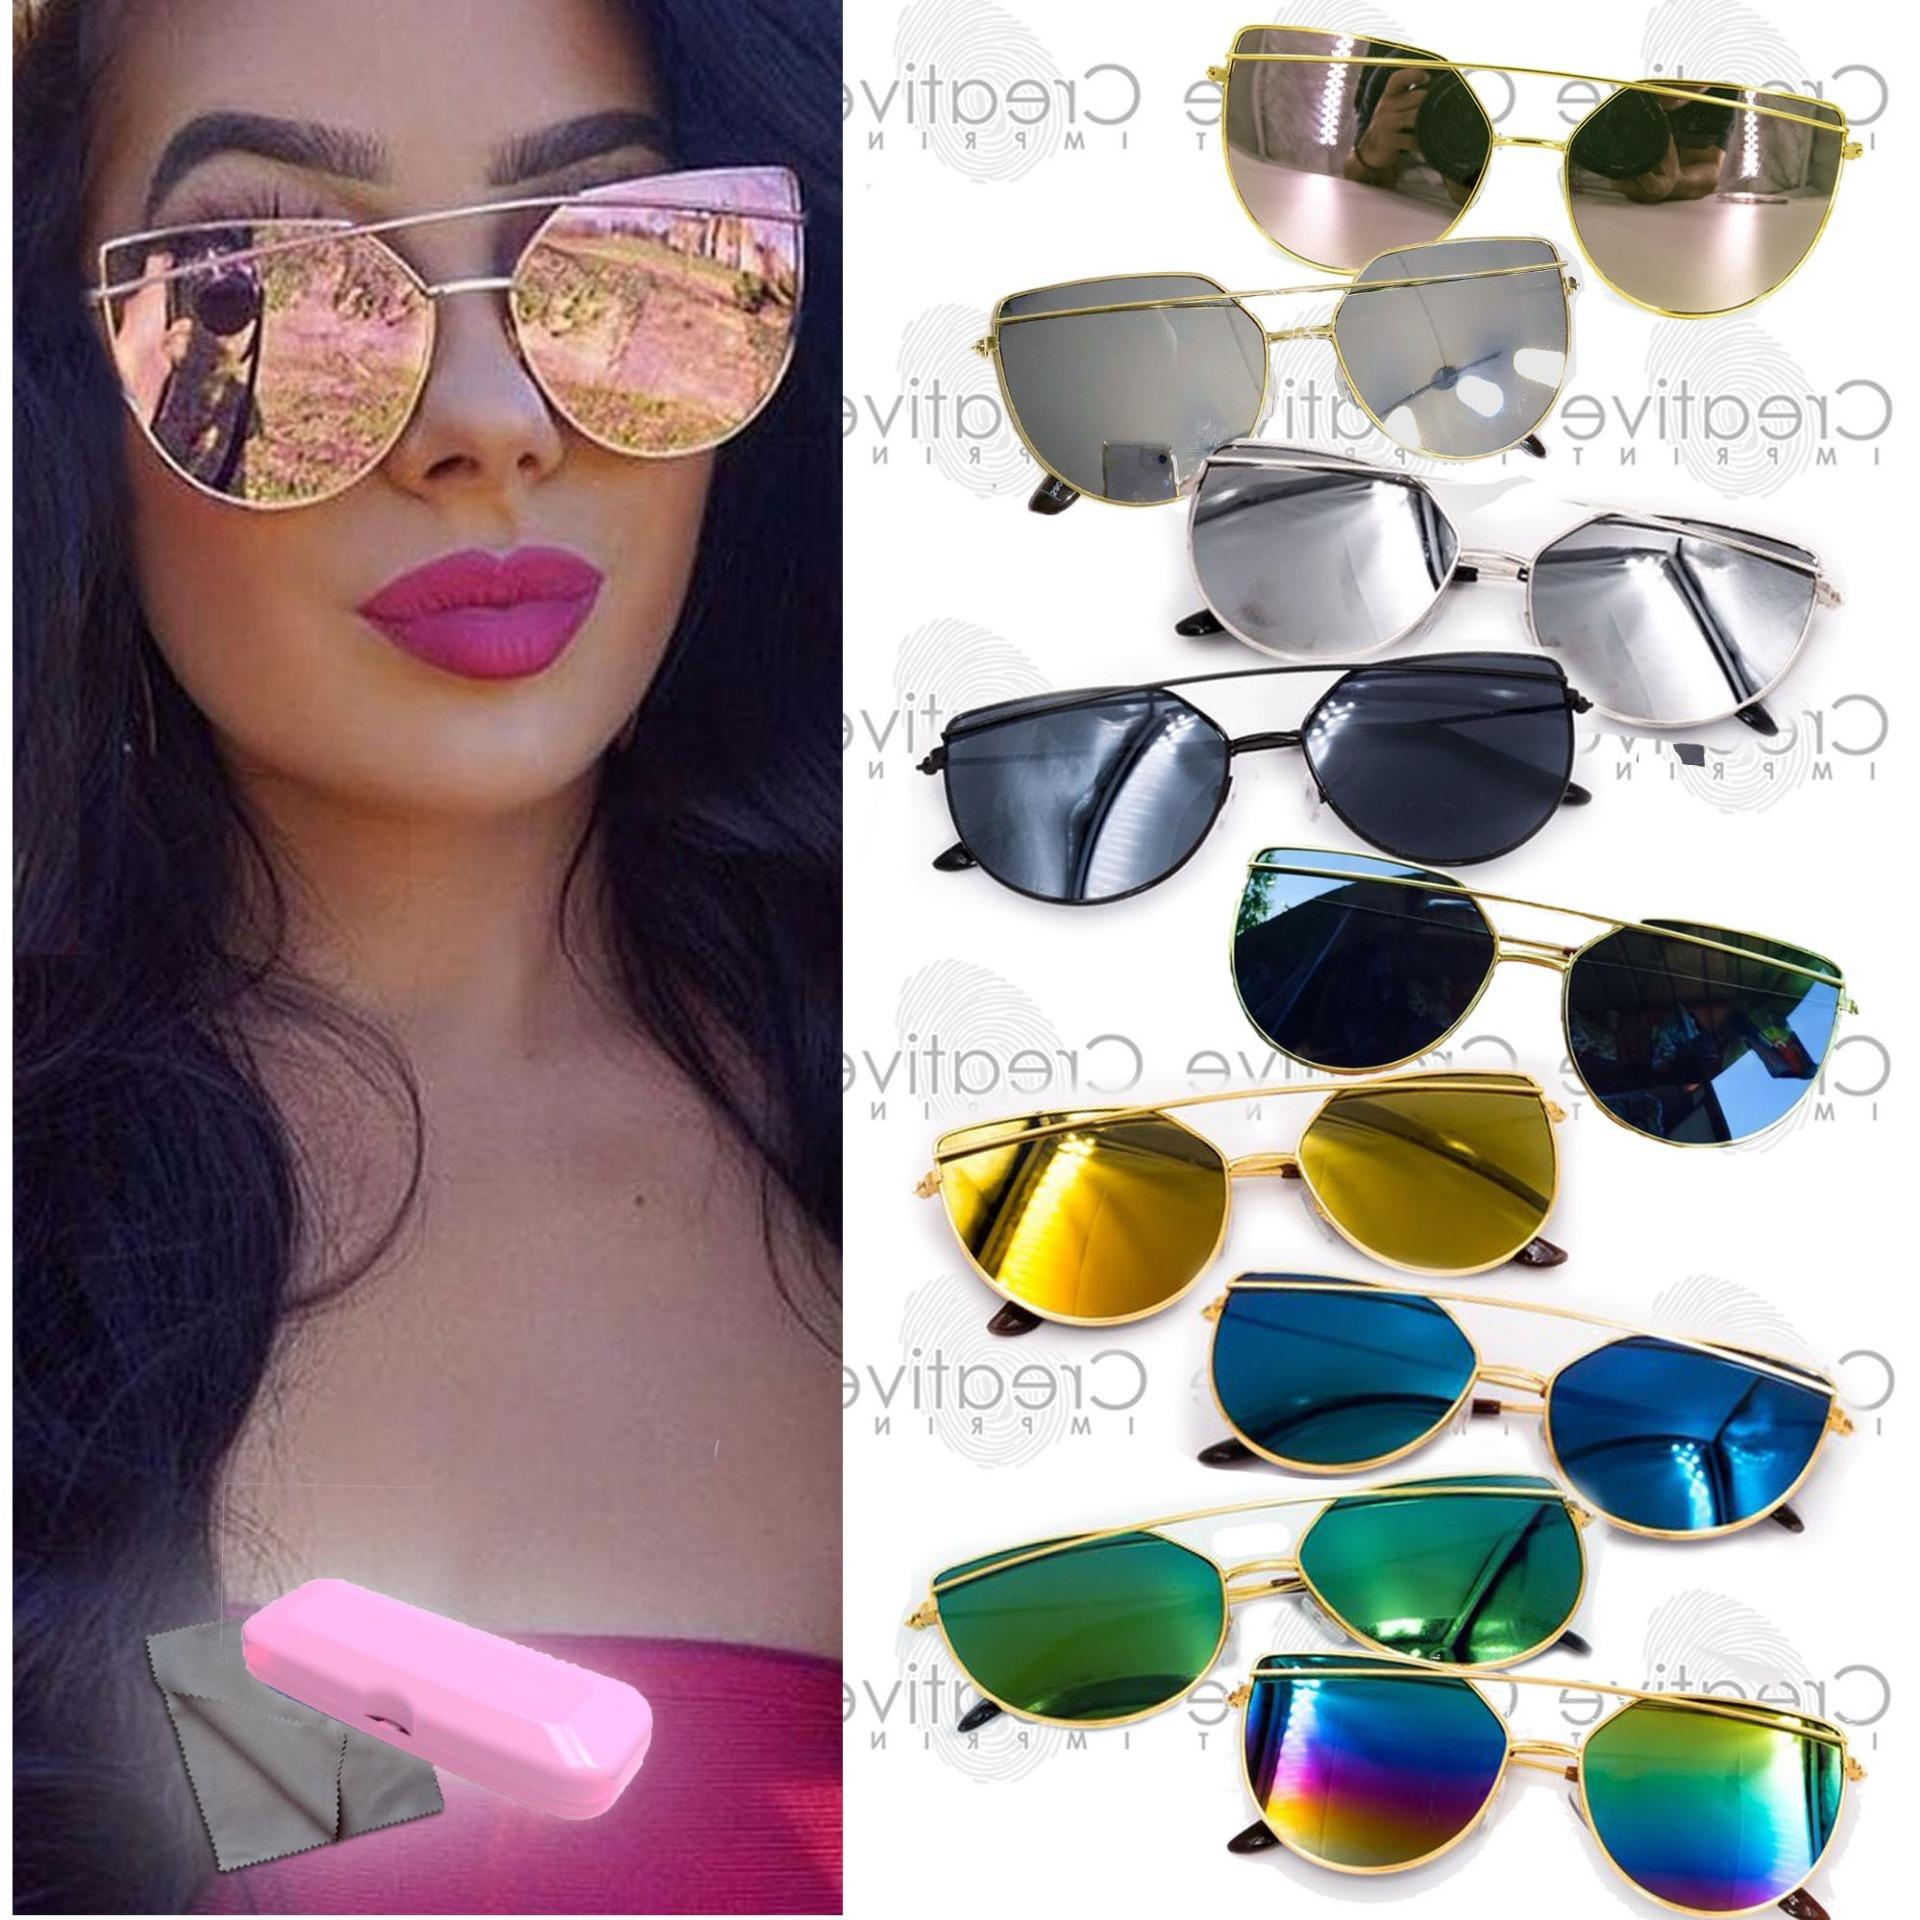 74fc80c5c4f Double Bridge Cat Eye Flat Sunnies Sunglasses (FREE CASE WIPER) Shades  Light Metal Lens